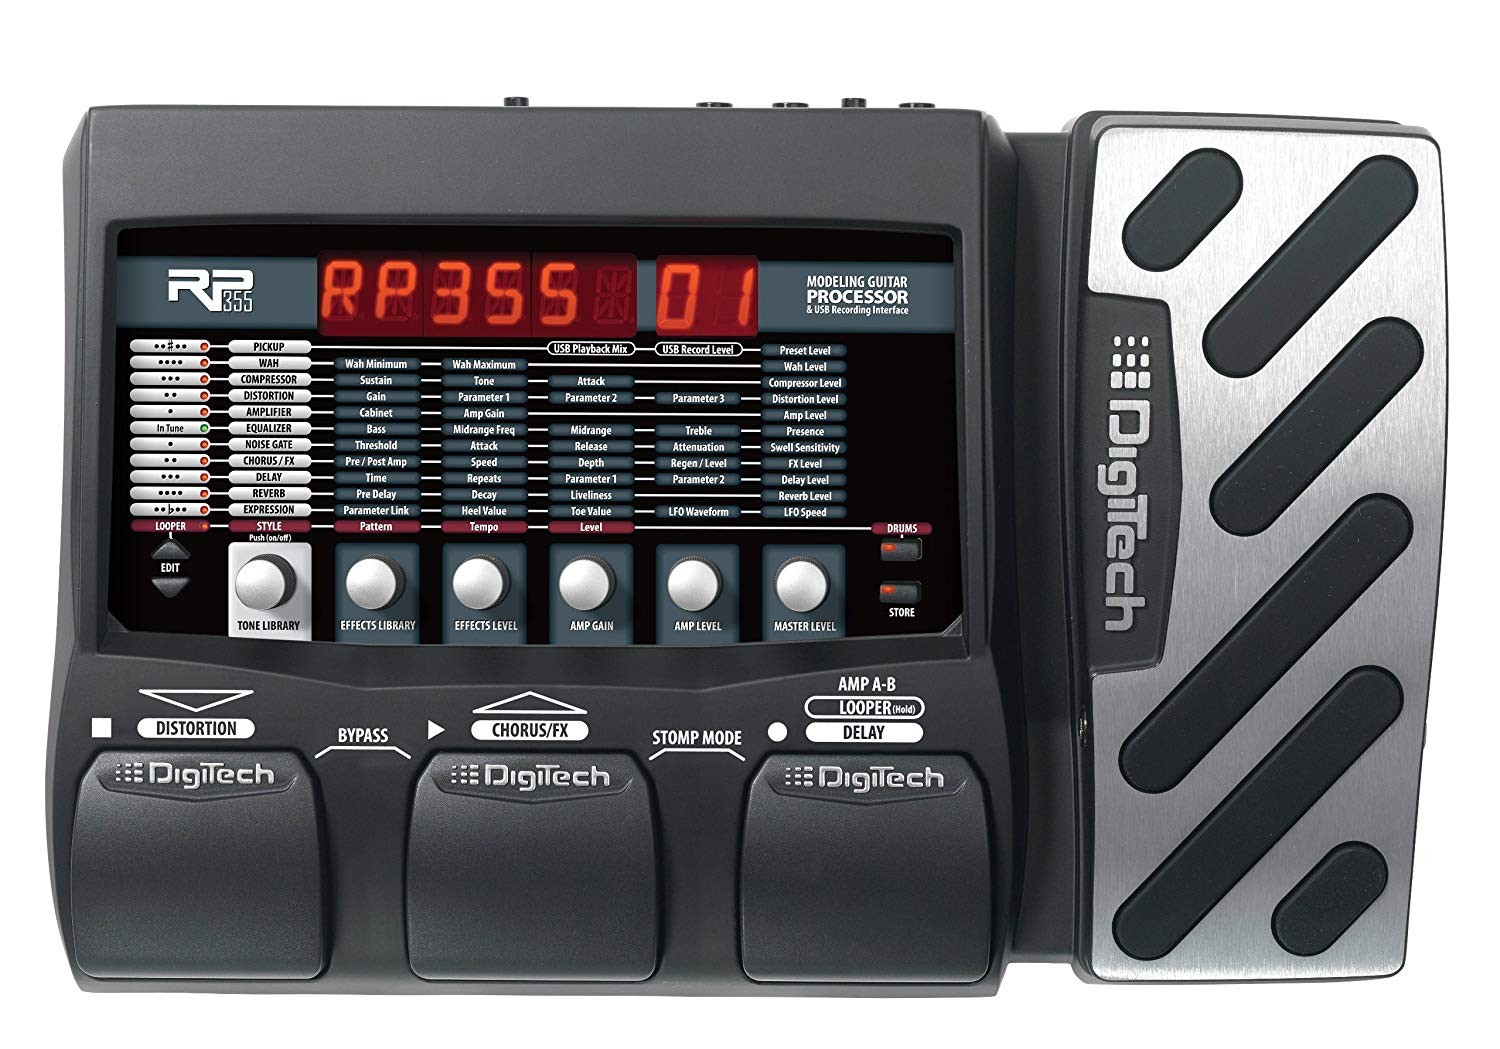 Amazon DigiTech RP355 Modeling Guitar Processor and USB Recording Interface Musical Instruments